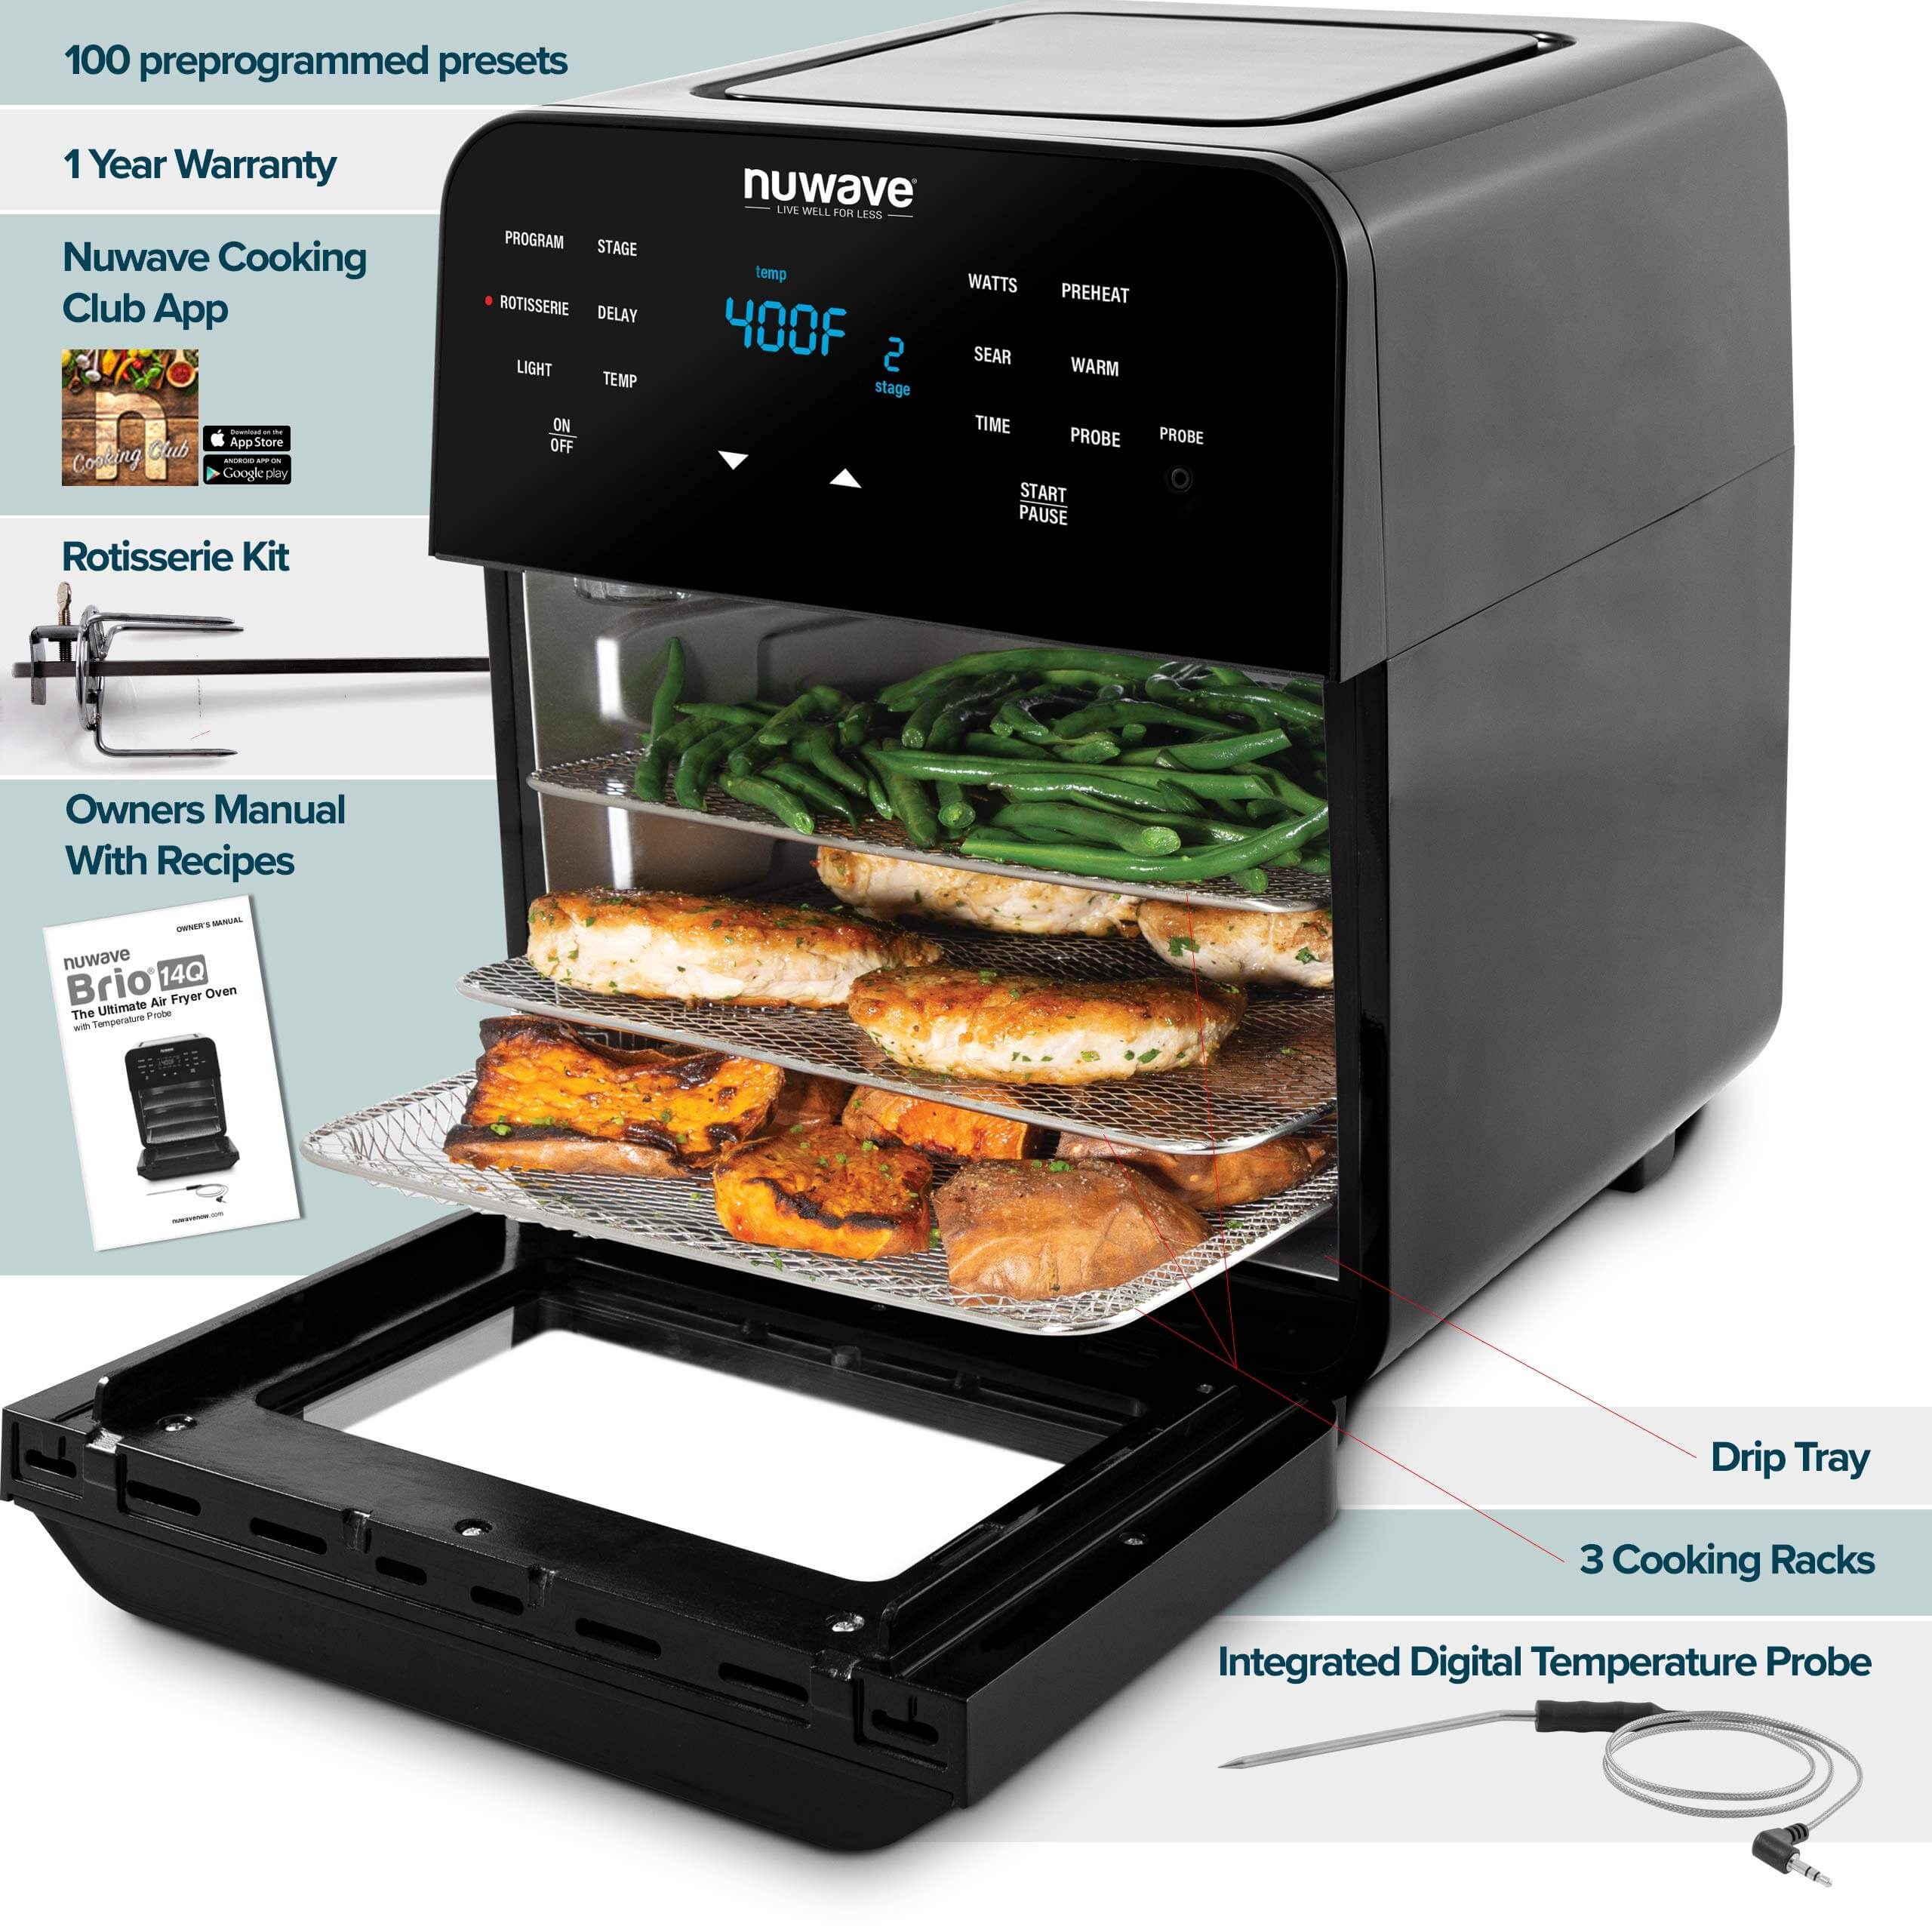 NUWAVE BRIO 14-Quart Large Capacity Air Fryer Oven, best air fryer review, best deep fryer, best toaster oven air fryer, what is the best air fryer, nuwave air fryer, nuwave brio air fryer, nuwave air fryer reviews